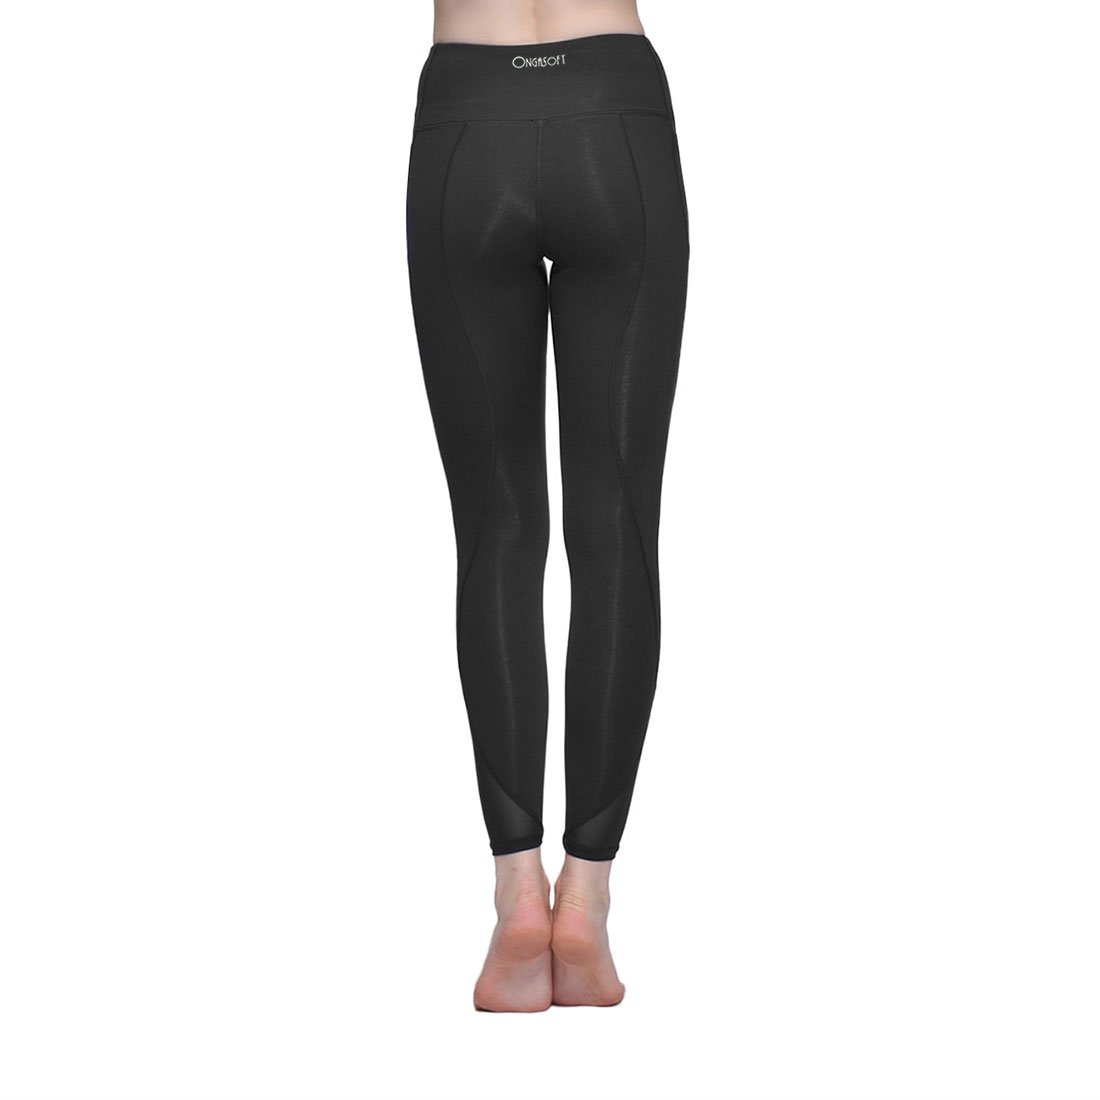 3b8a0d265aedc Amazon.com: ONGASOFT Yoga Pants for Women Fitness Mesh Workout Legging:  Sports & Outdoors